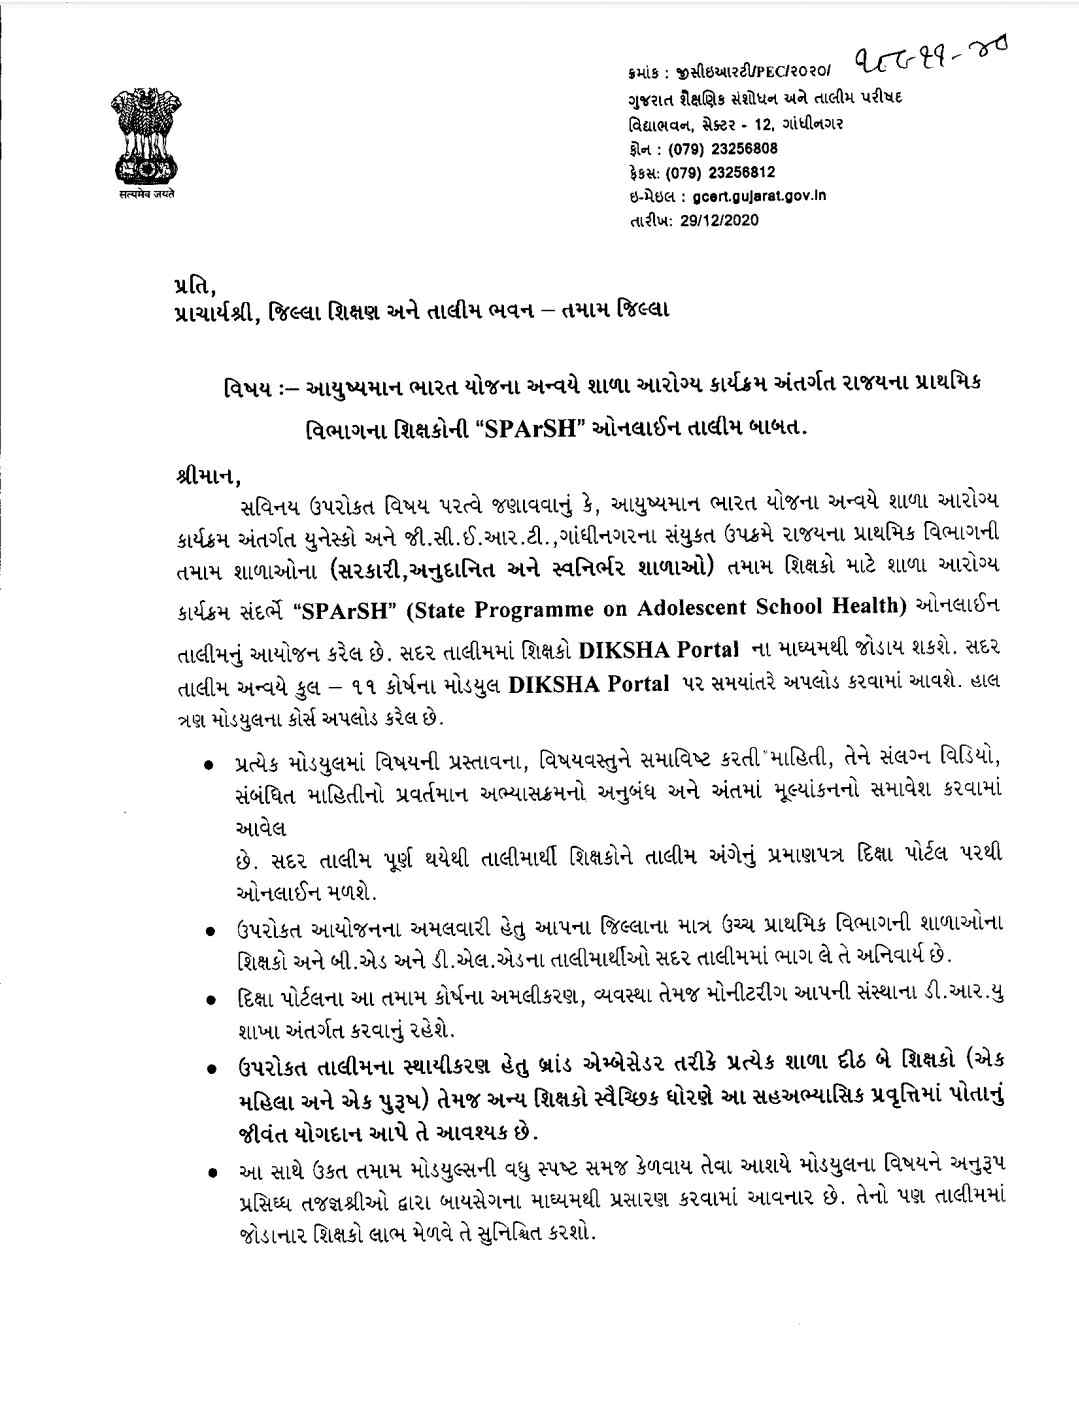 SPARSH Diksha Online Training Letter for Primary Teacher